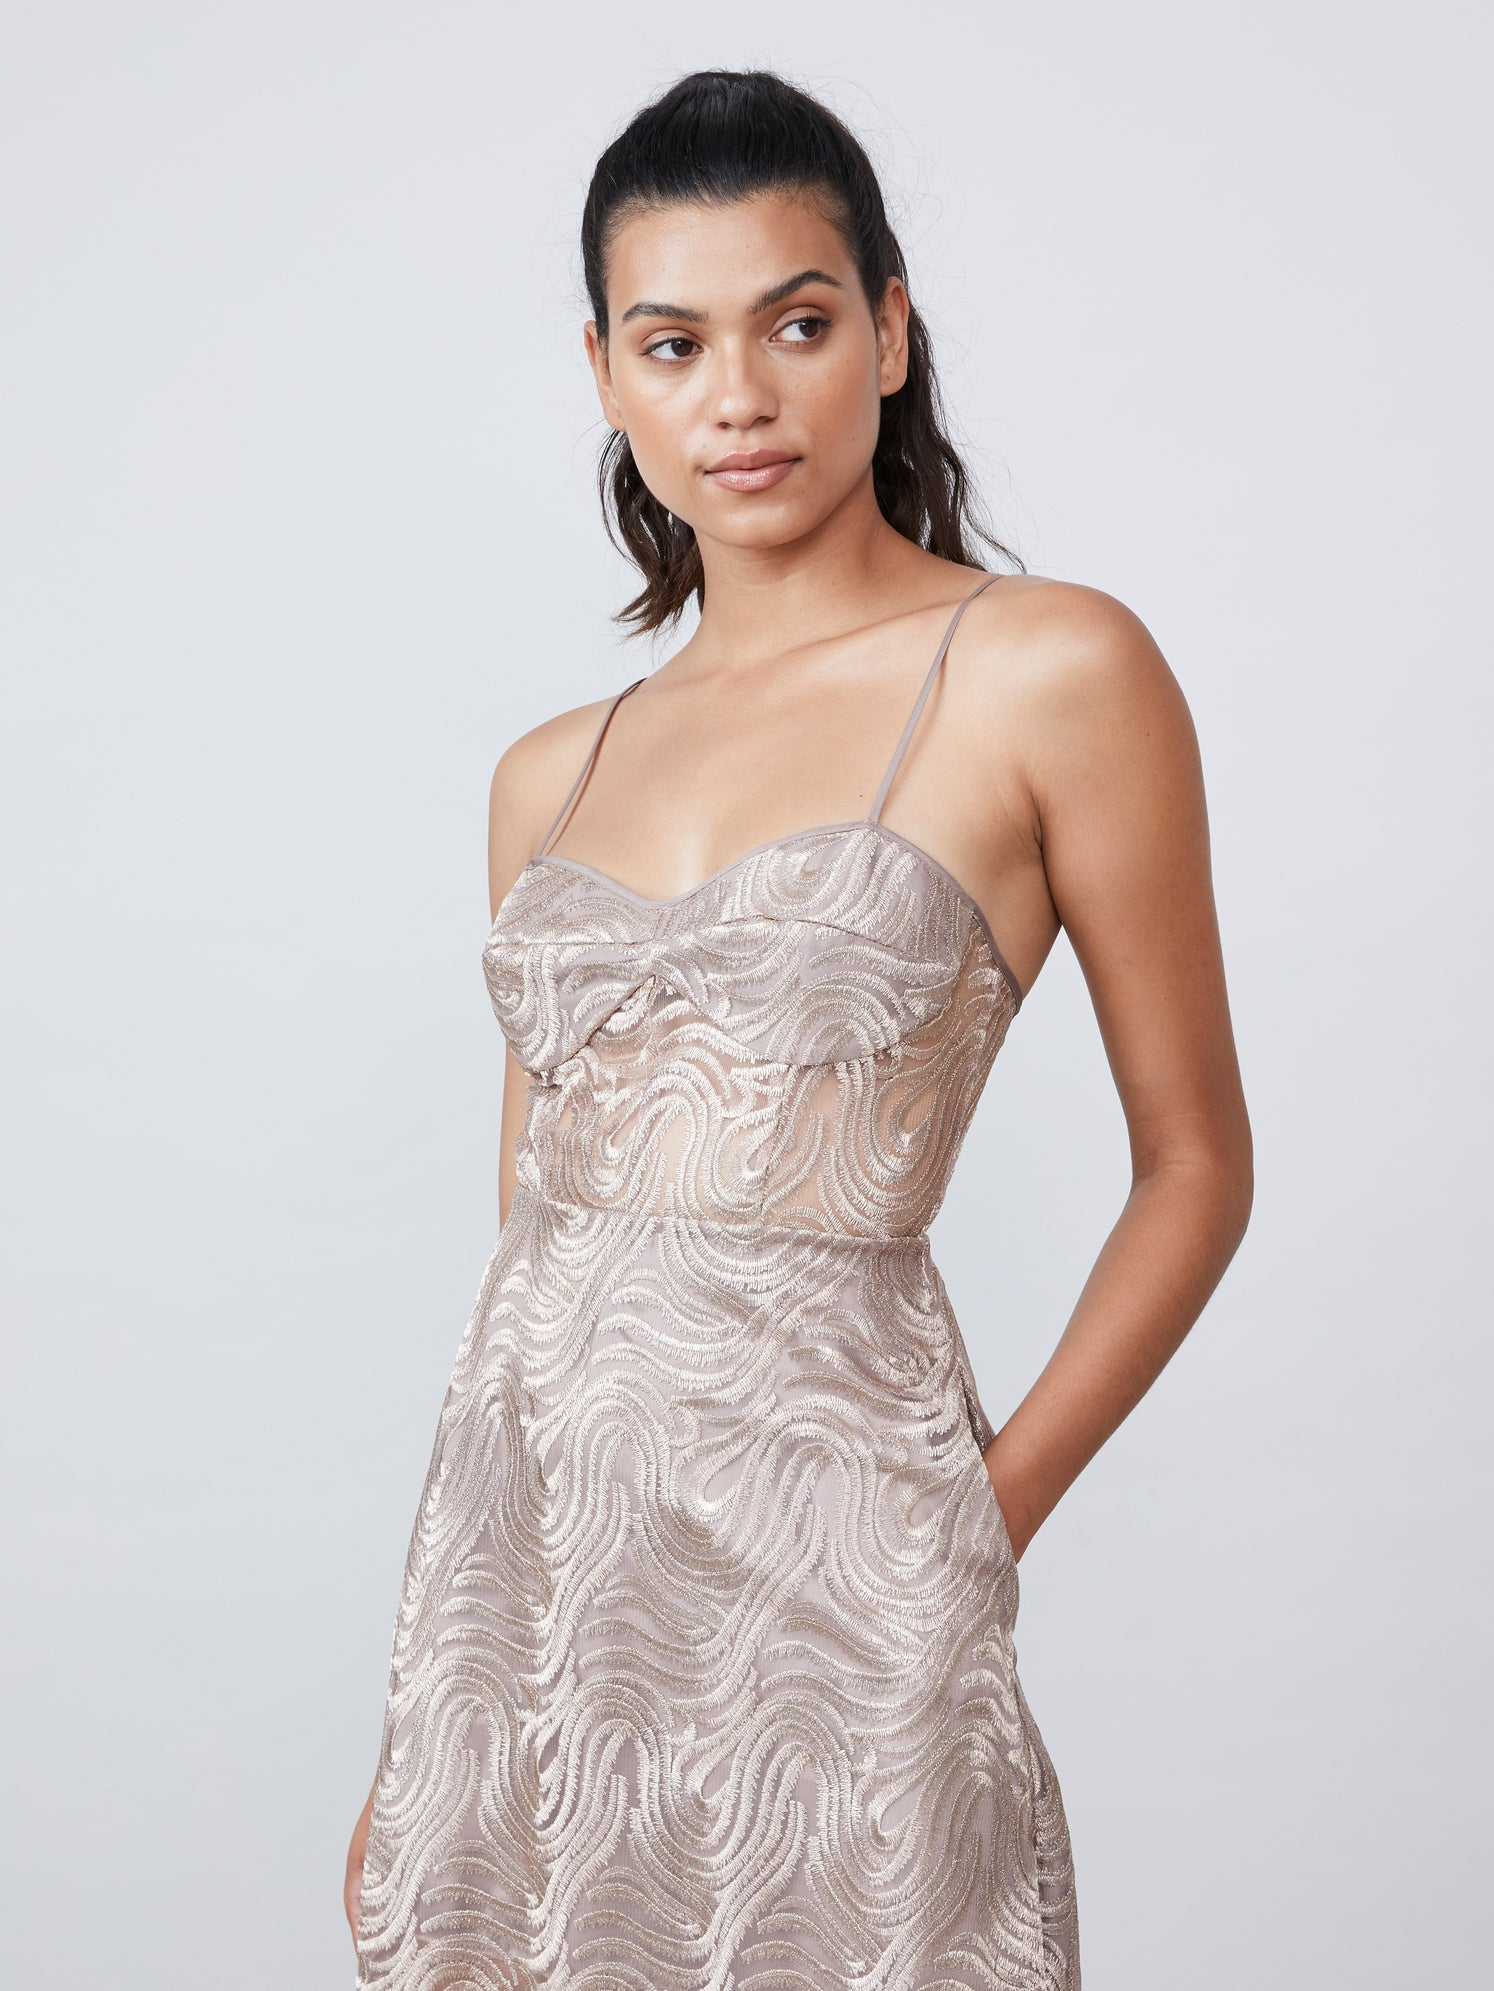 Metallic embroidered jacquard lace bustier dress with semi sheer bodice and side pockets Alternate